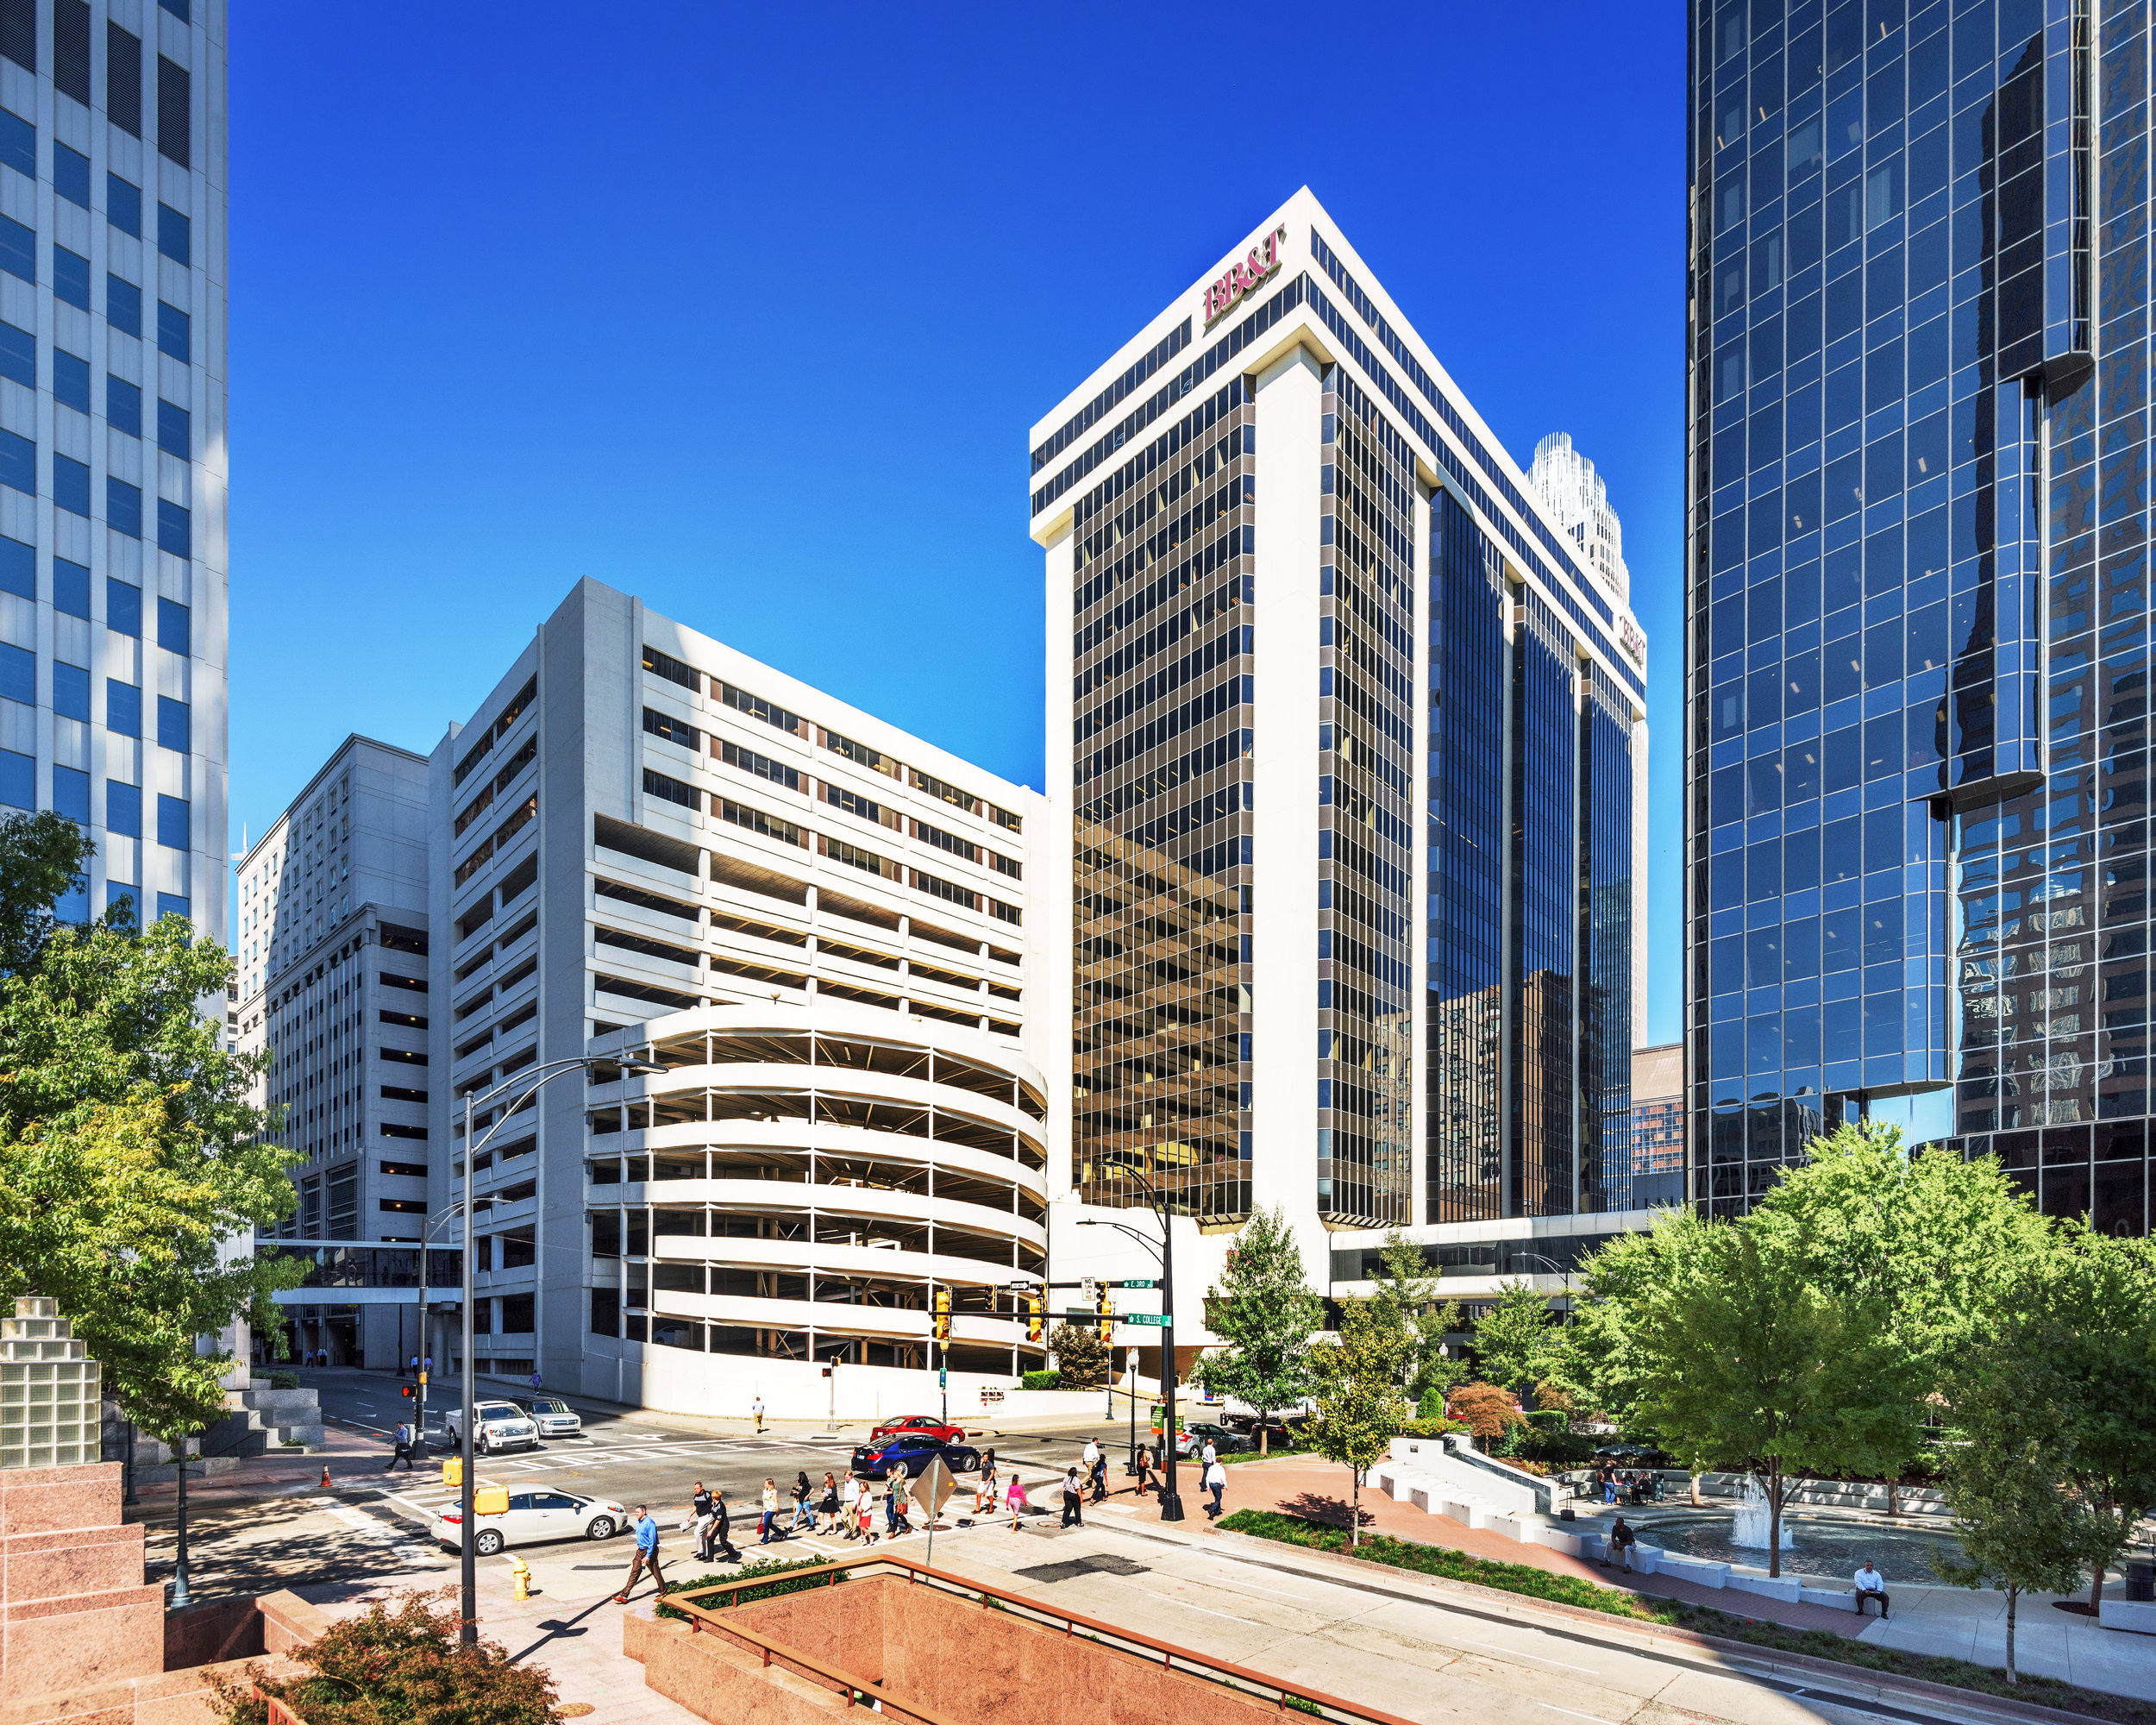 22-Story, 567,865 RSF office tower - FLEXIBLE FLOORPLATES RANGE FROM 20,000 RSF TO 60,000 RSF